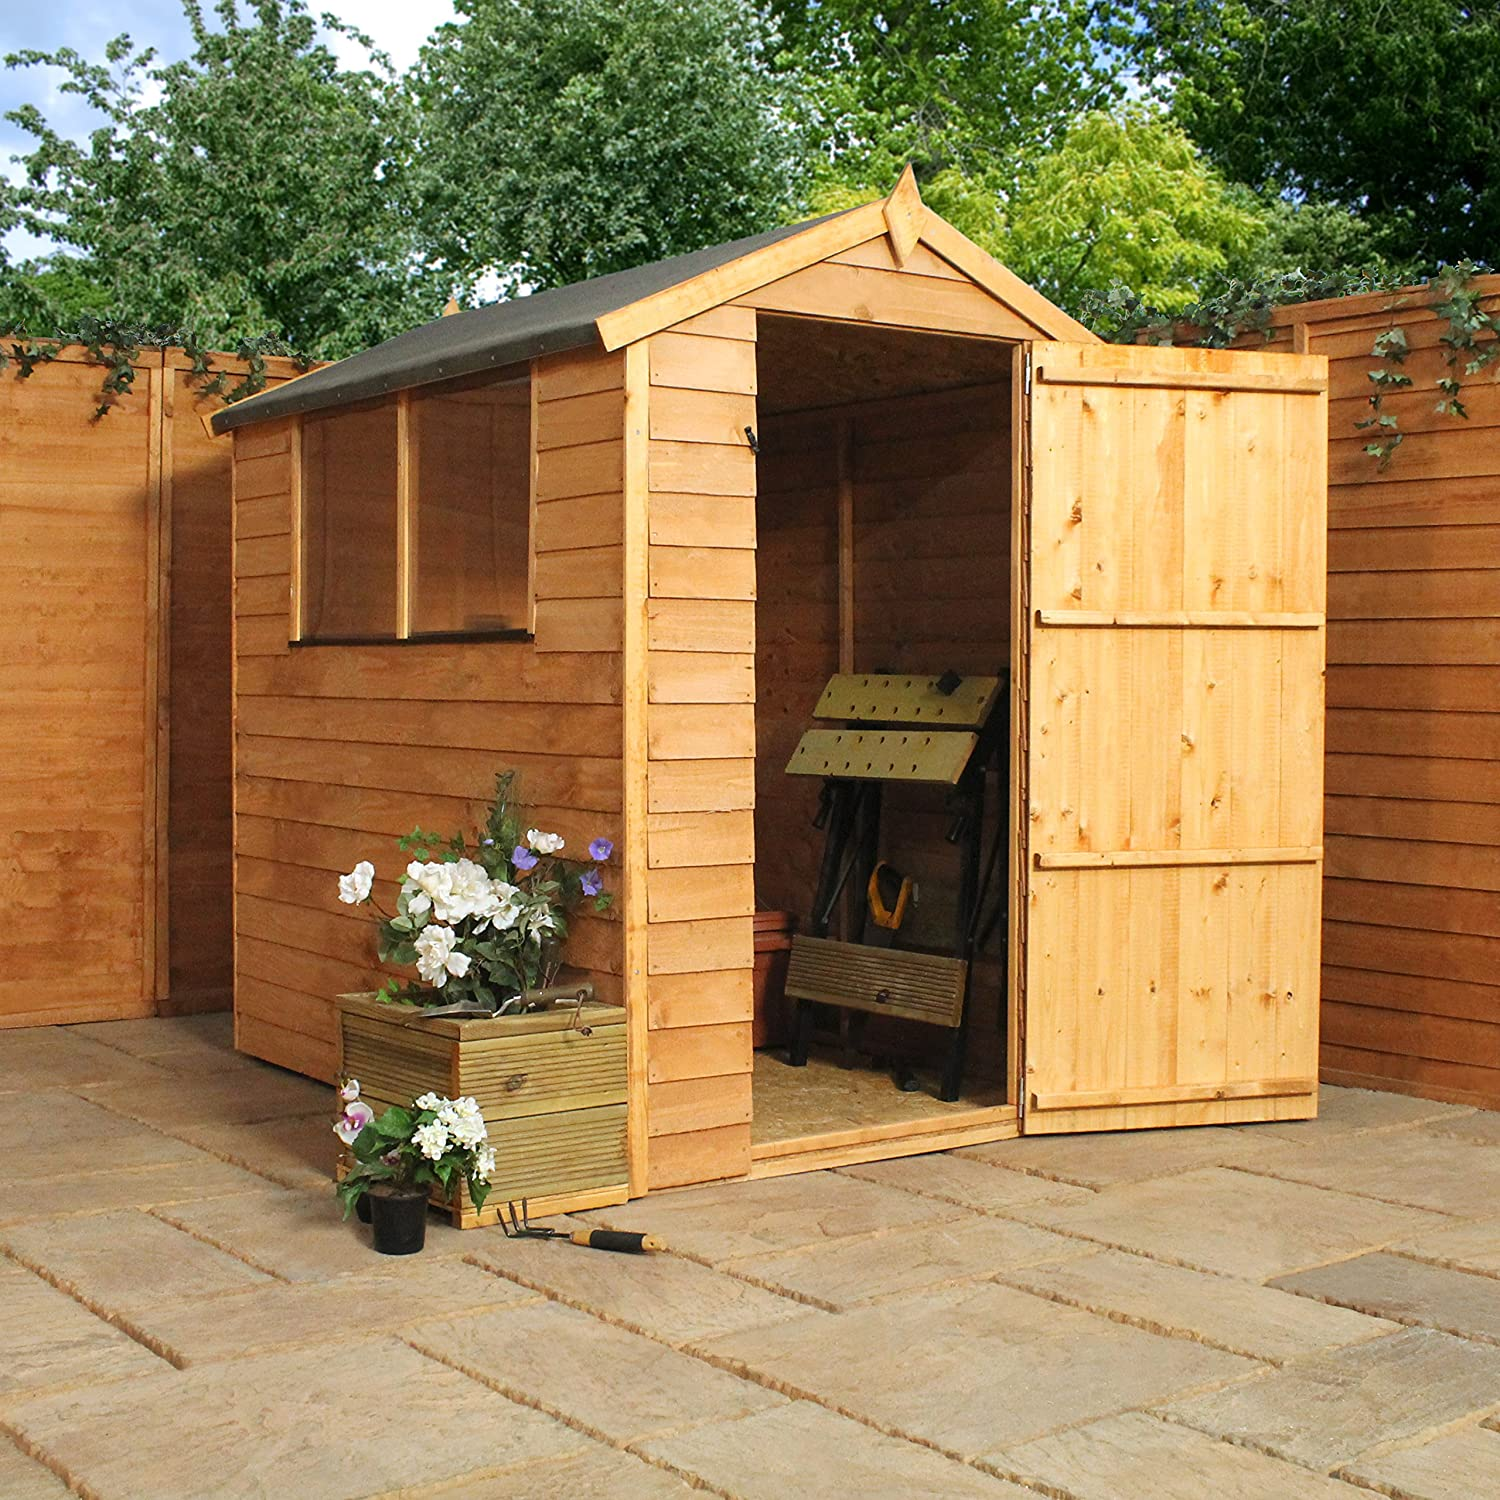 x security overlap apex garden shed tongue garden sheds